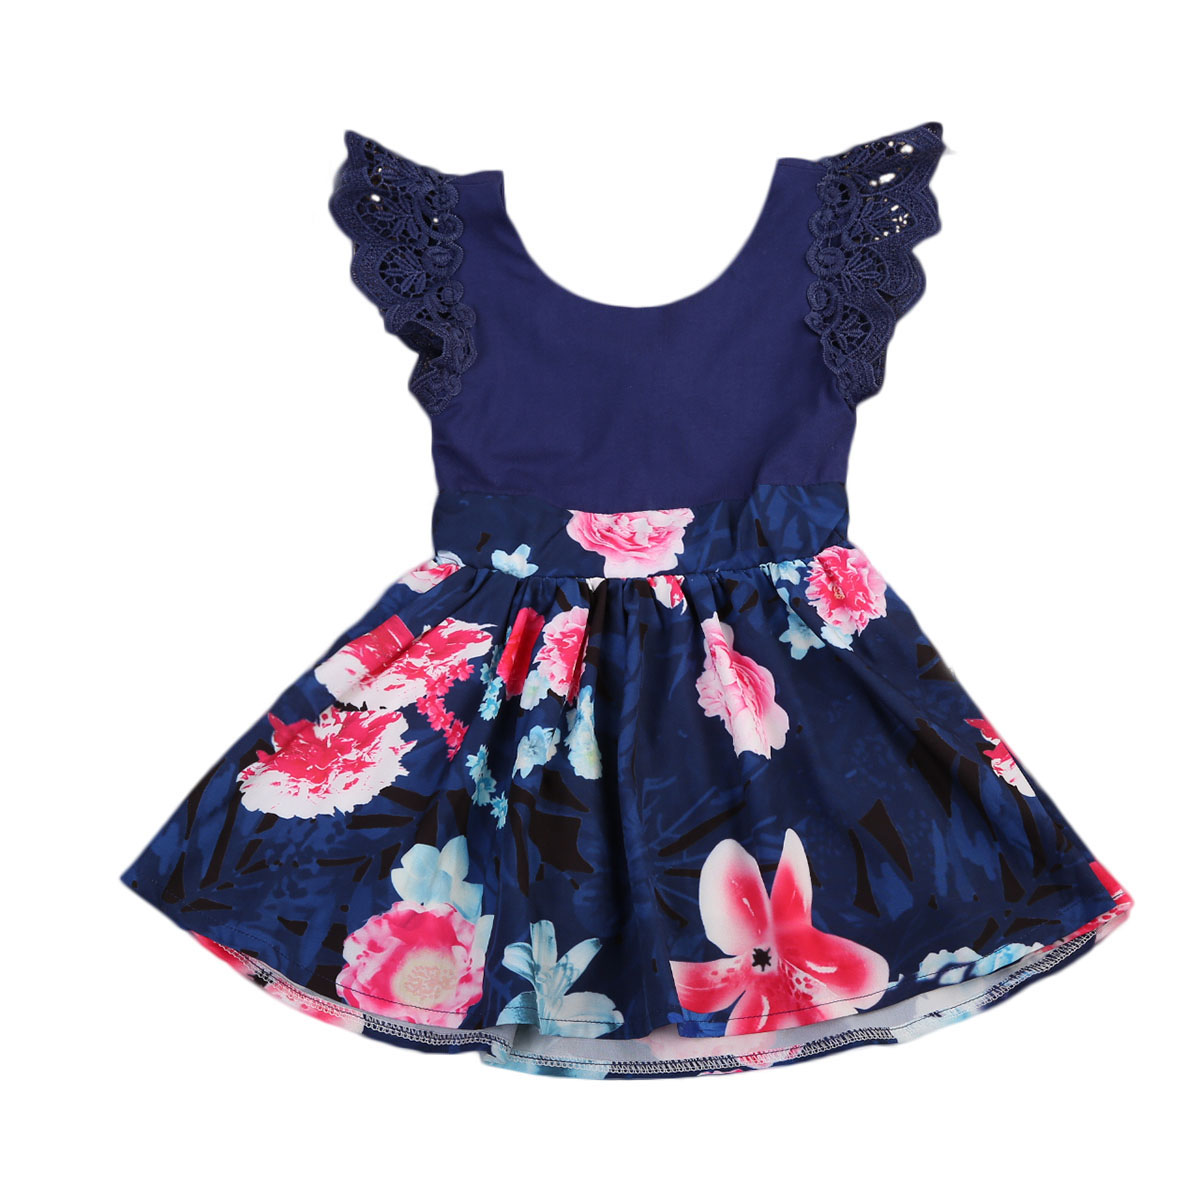 Toddler Kids Girls Clothes Dresses Sleeveless Floral Cute Tutu Mini Summer Party Dress Sundress Girl